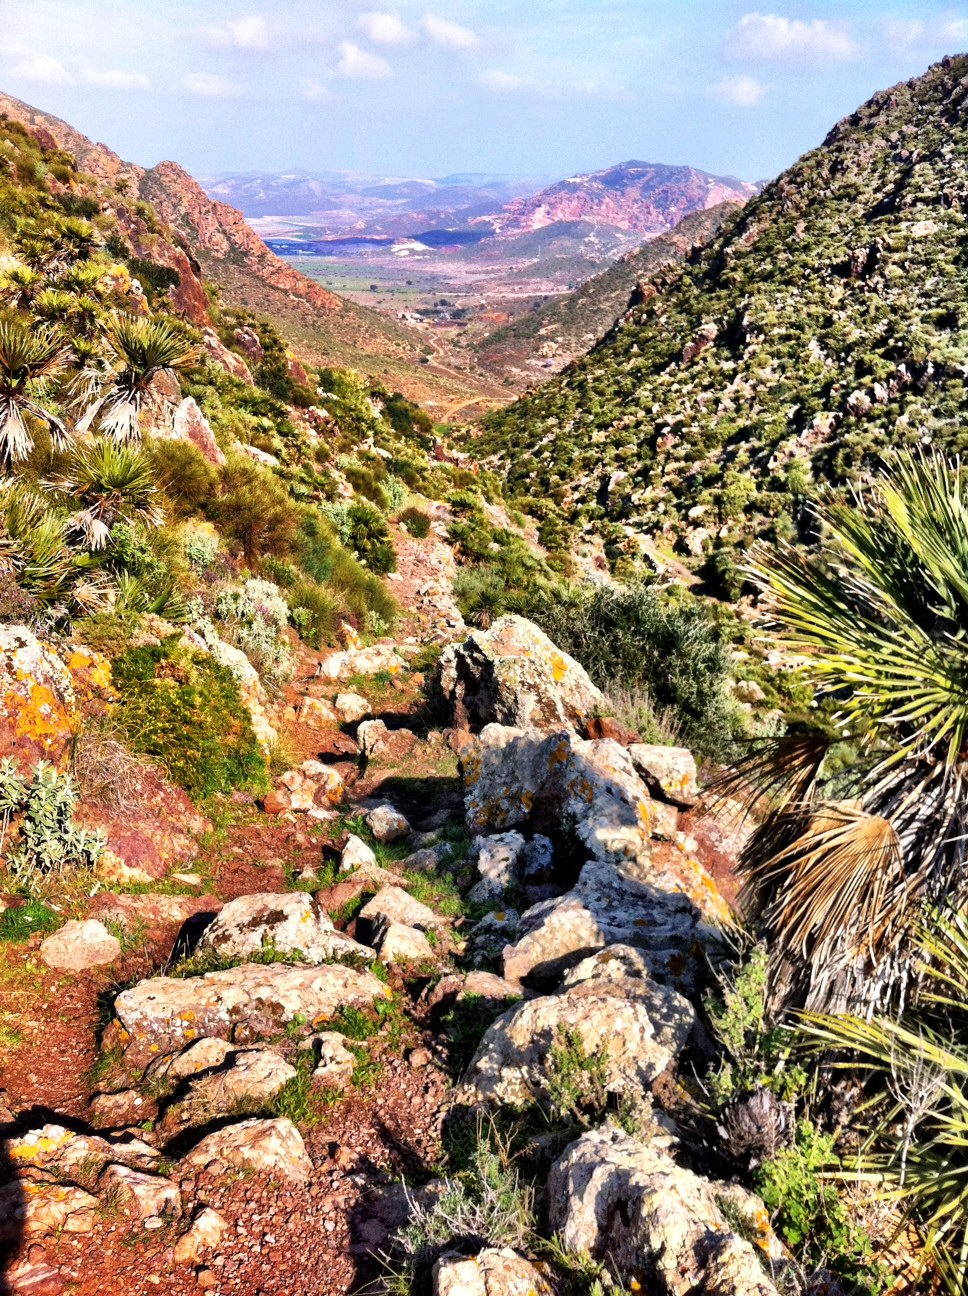 The Cerro Cuchillo valley in the Cabo de Gata, lush with flora and a very rocky path!